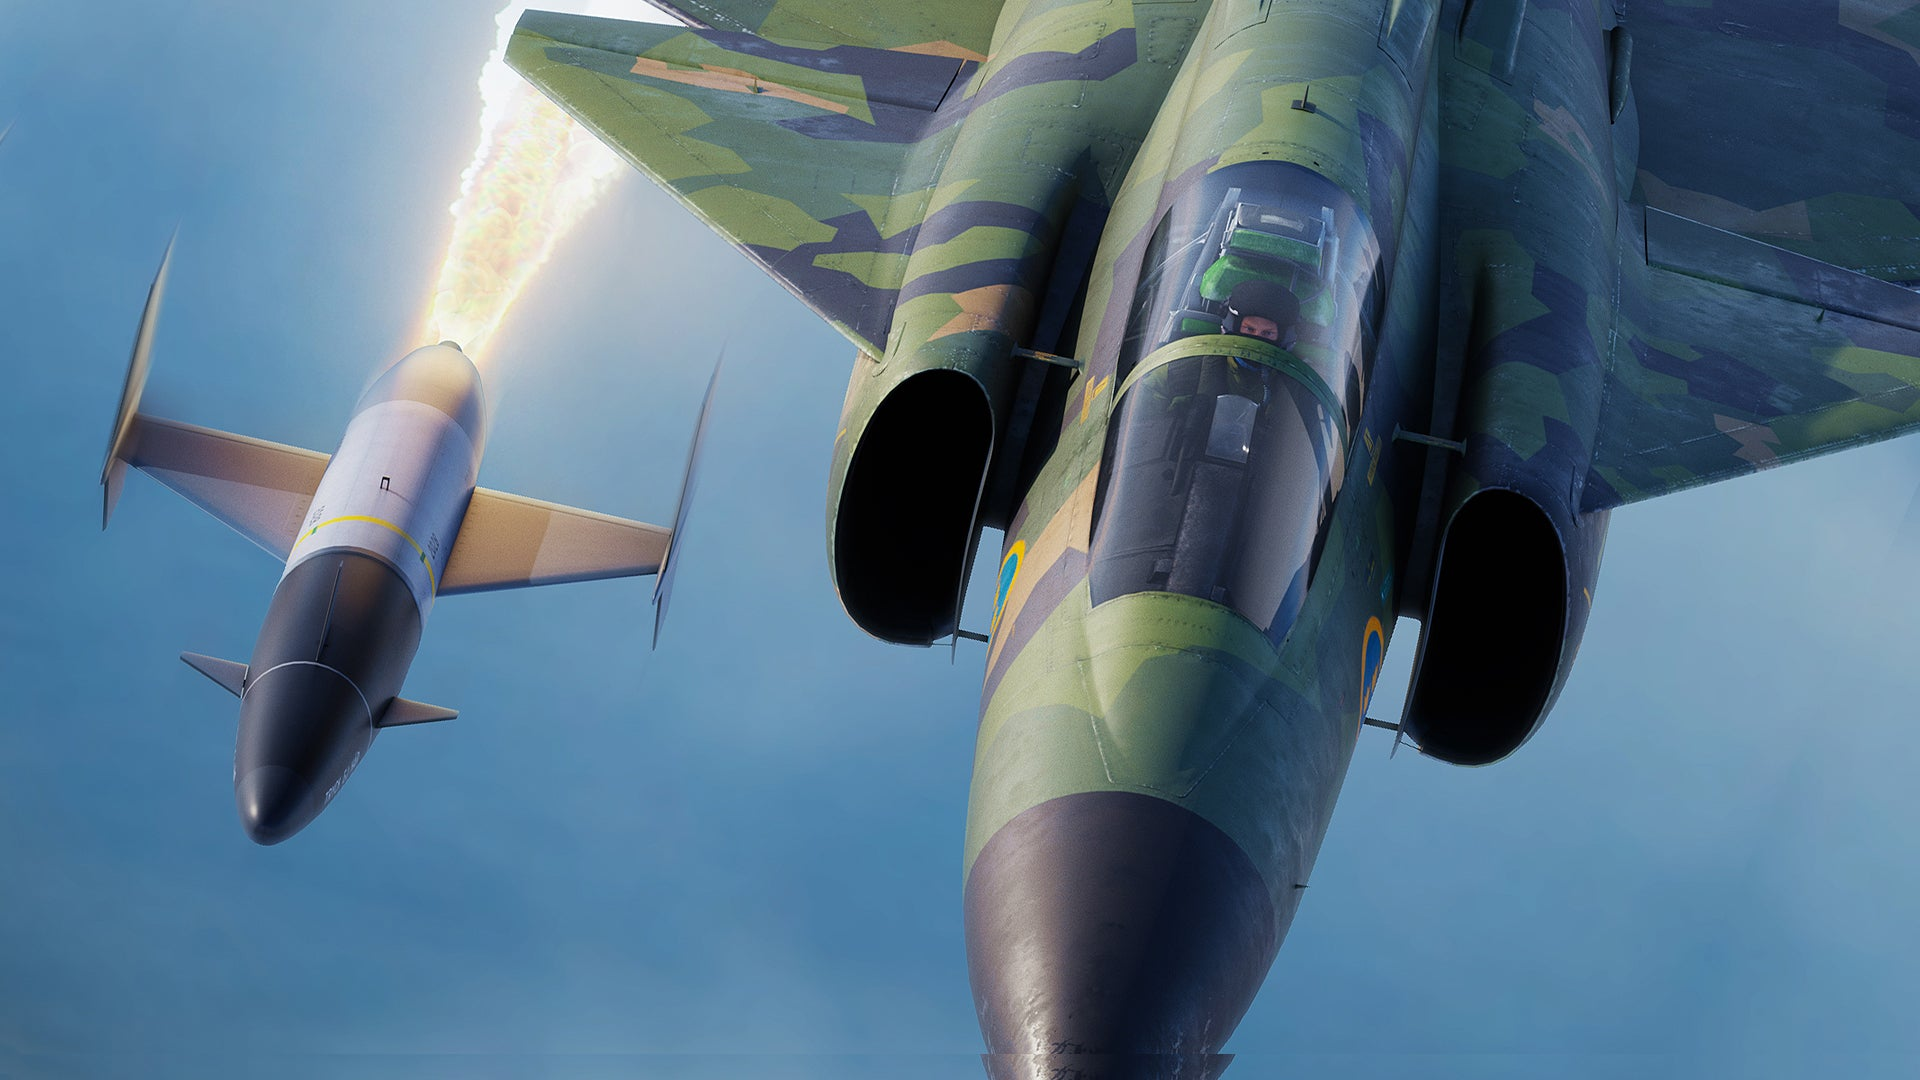 DCS: AJS-37 Viggen by Heatblur Simulations